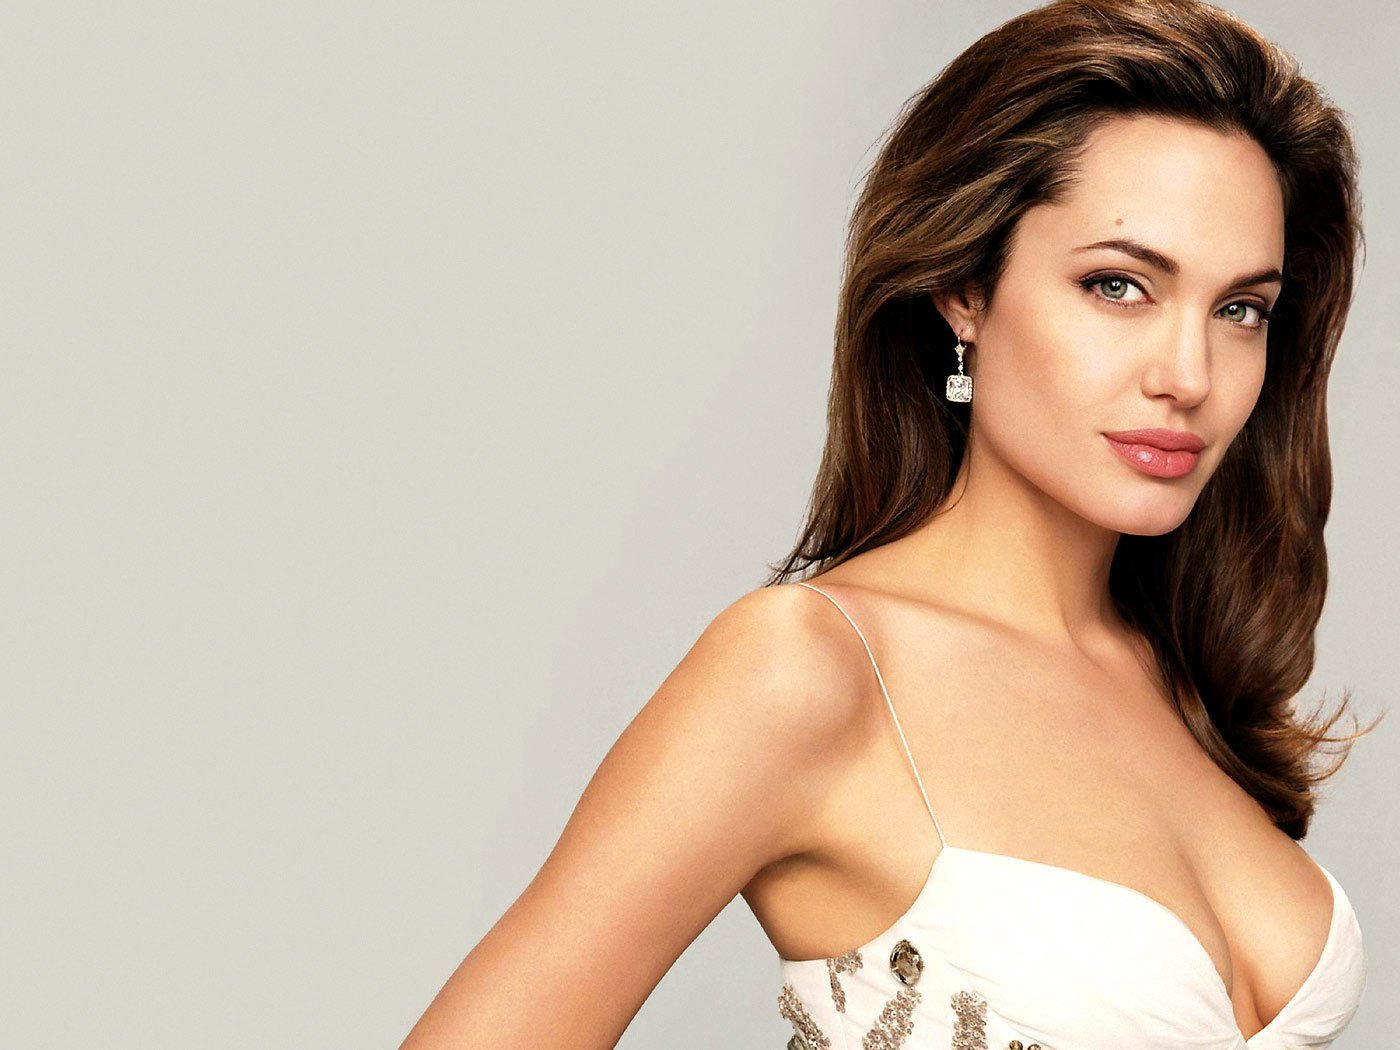 jolie hd wallpapers angelina jolie hd wallpapers 5 angelina jolie hd 1400x1050